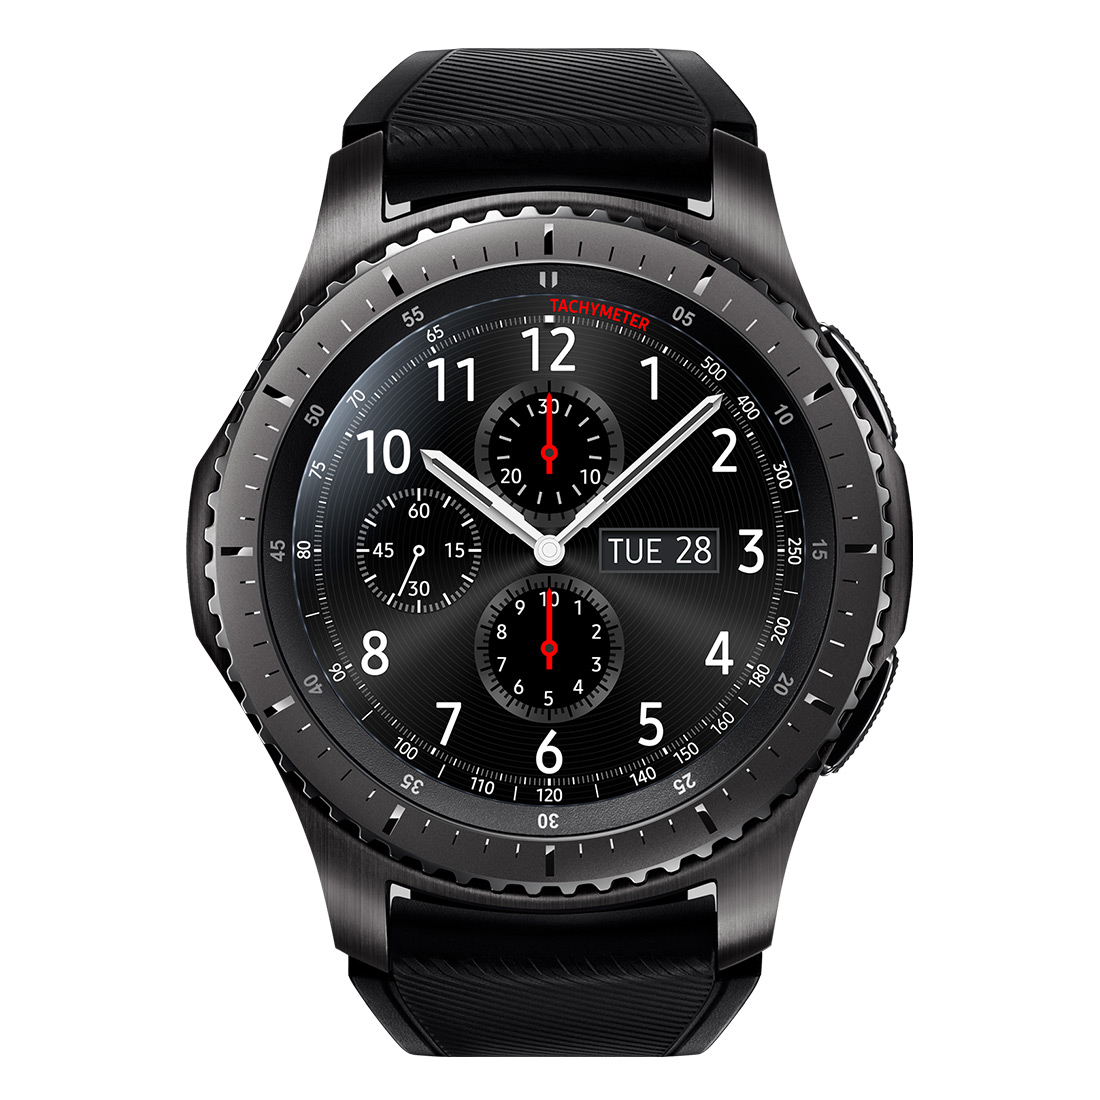 Samsung Announces the Gear S3 Classic and Gear S3 Frontier – Droid Life